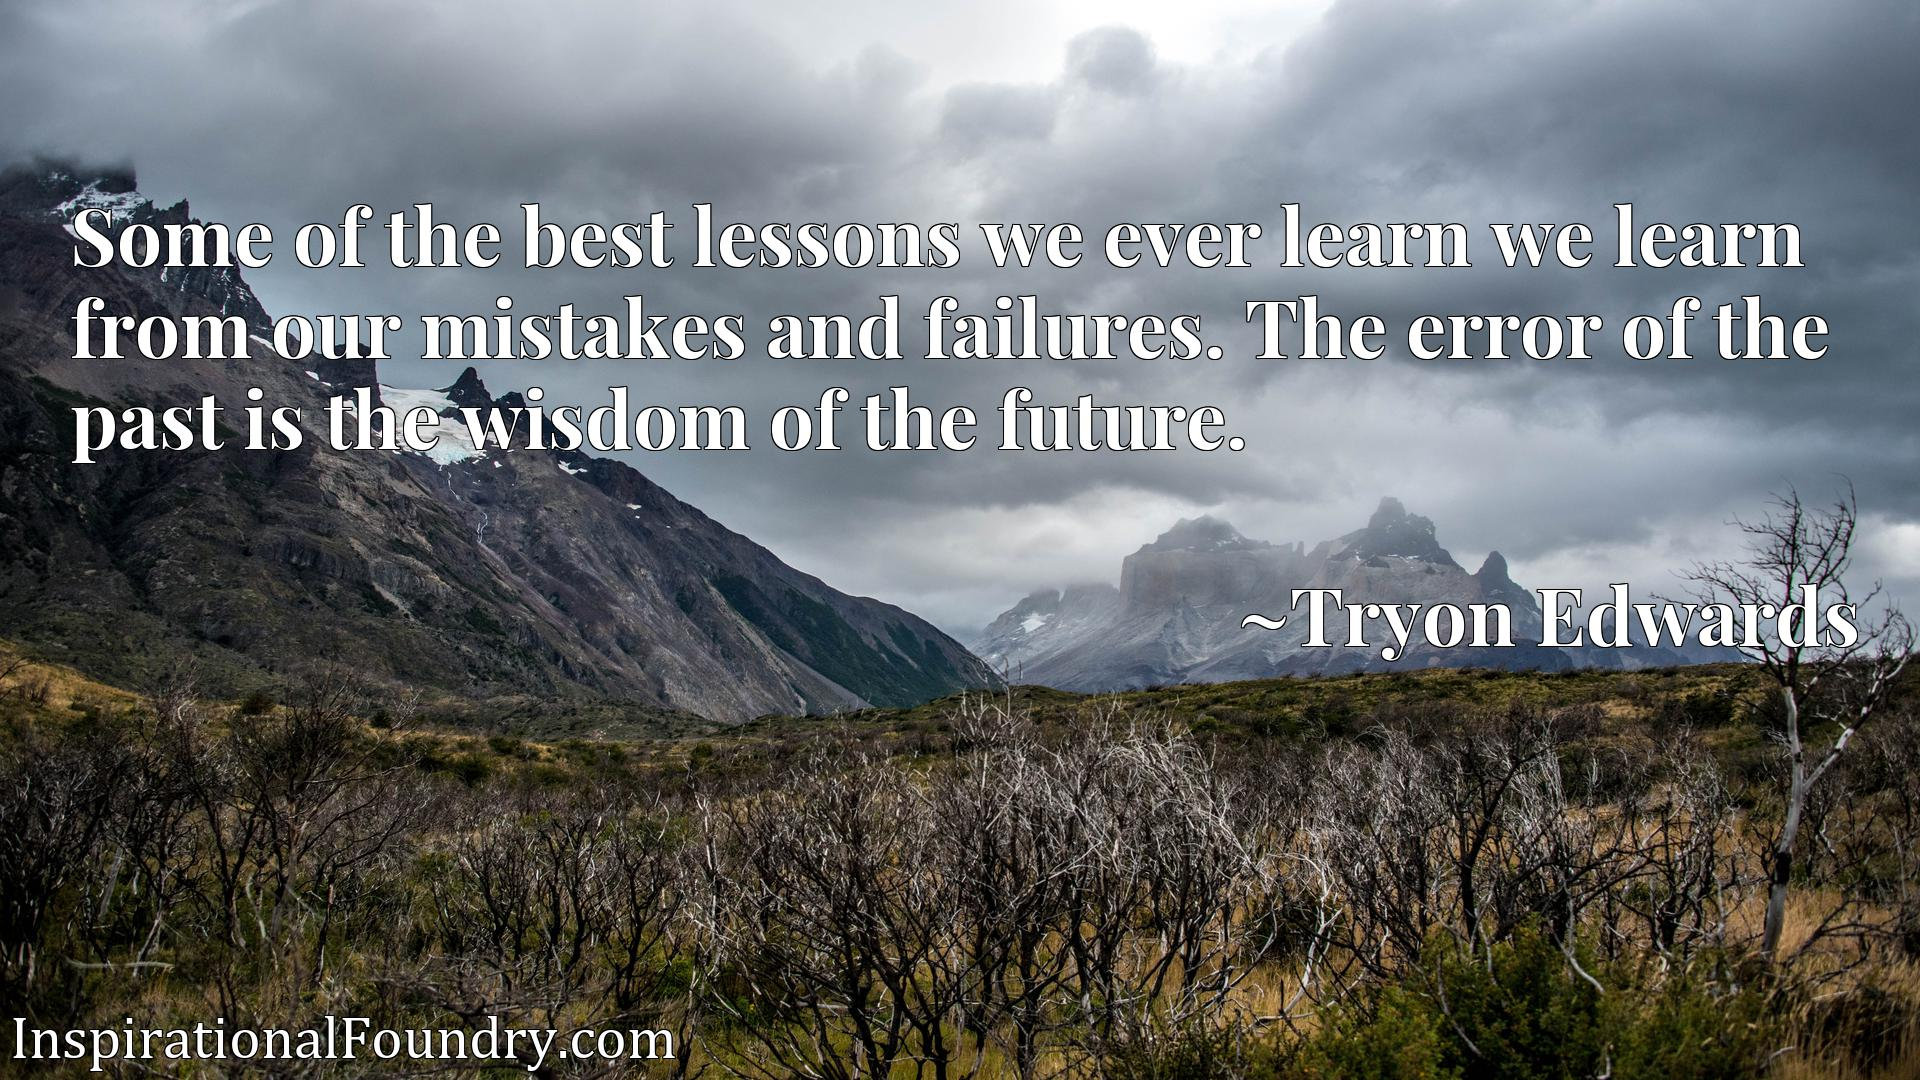 Some of the best lessons we ever learn we learn from our mistakes and failures. The error of the past is the wisdom of the future.